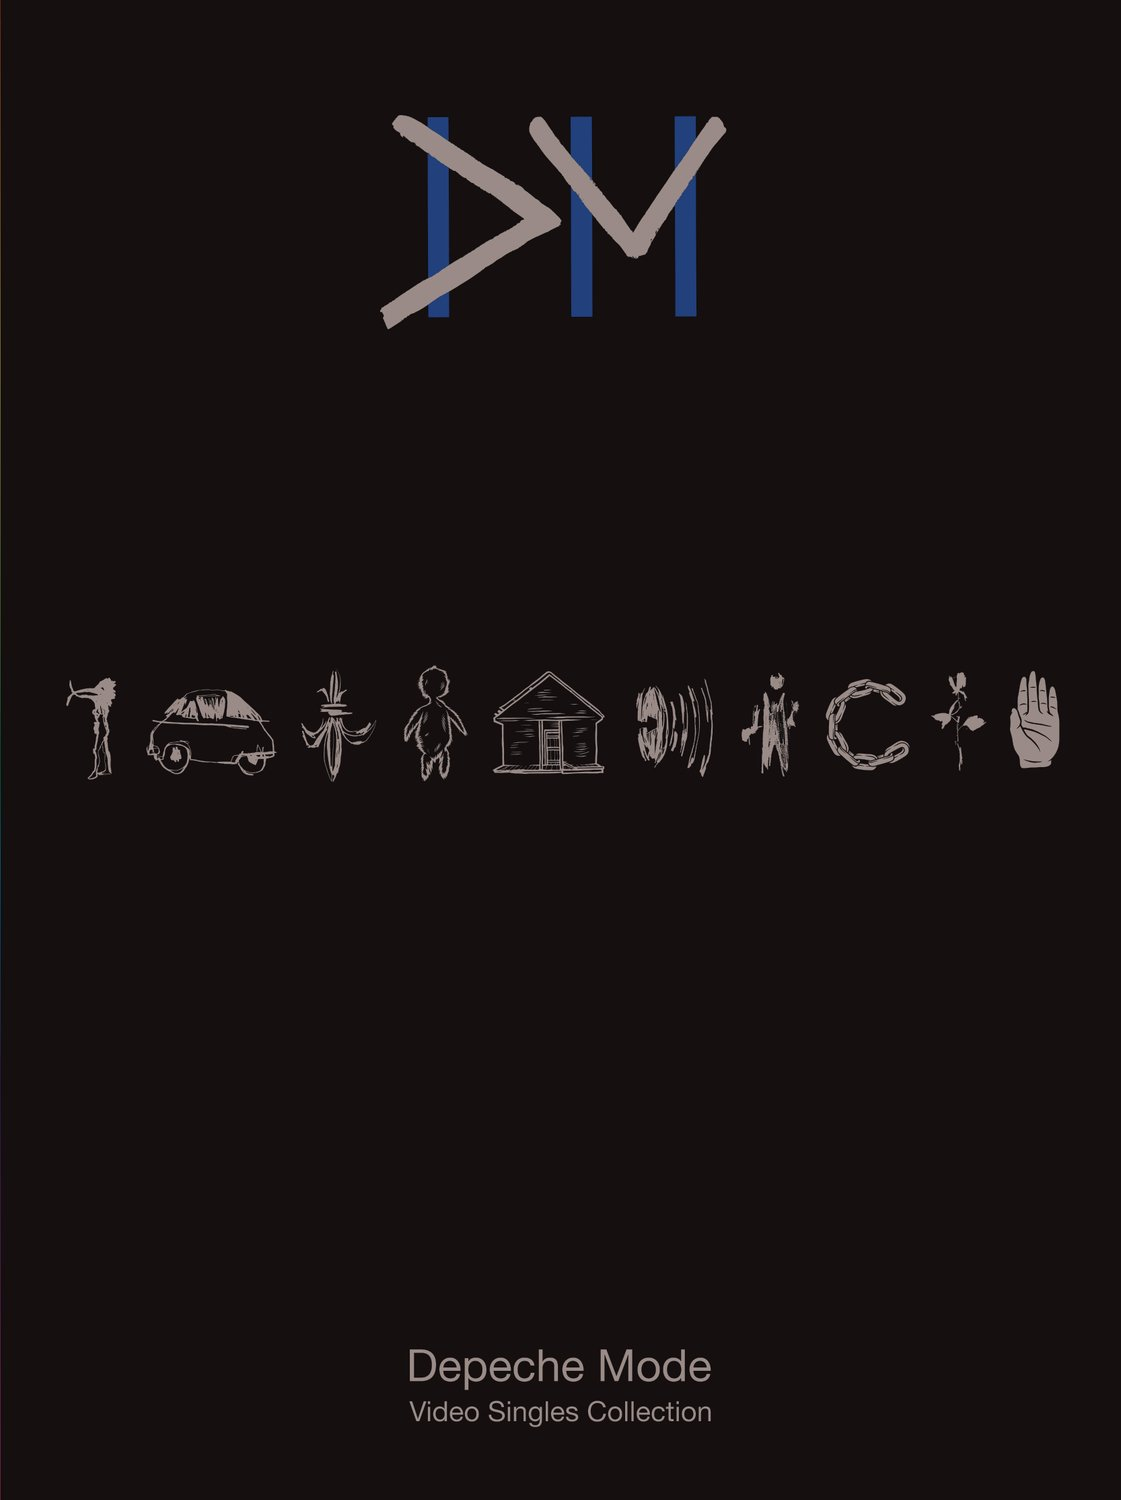 DVD : Depeche Mode - Video Singles Collection (Boxed Set, 3 Disc)